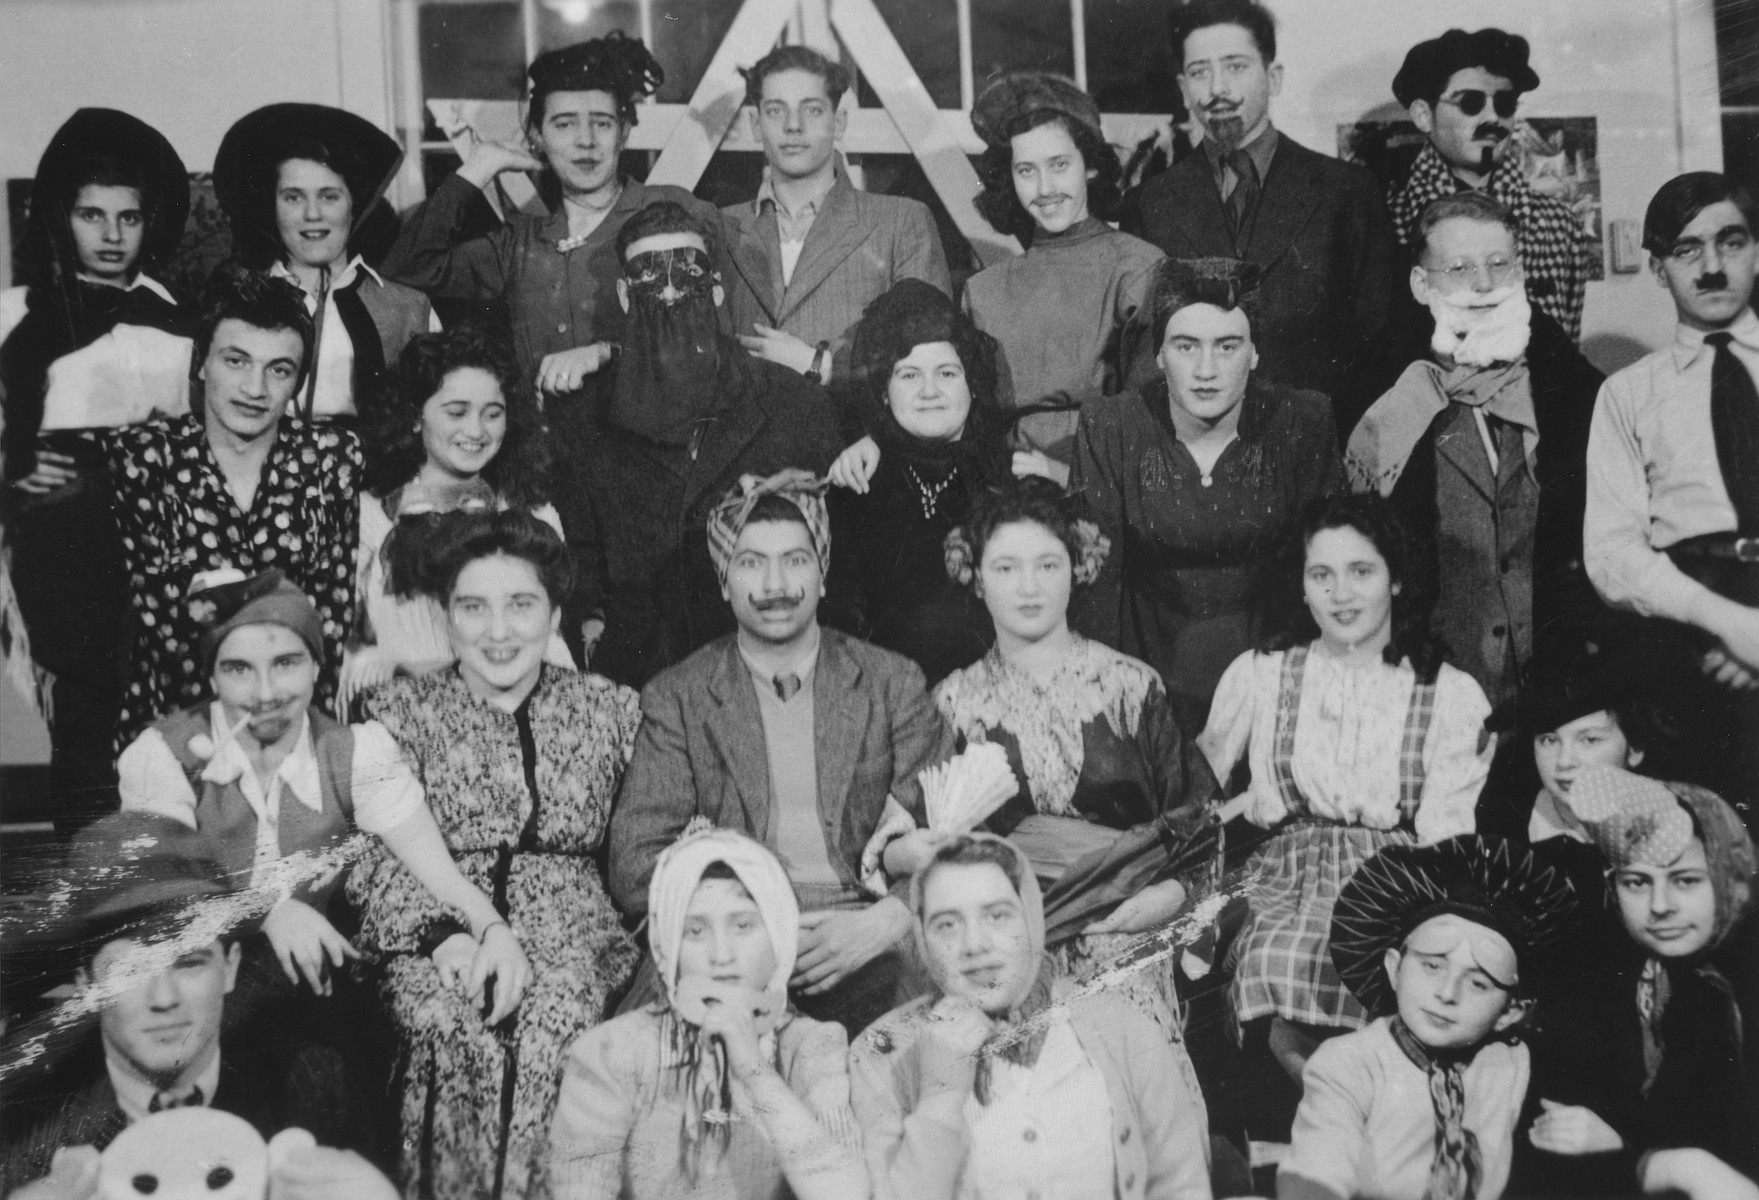 Group portrait of Jewish youth dressed in Purim costumes at the Fort Ontario refugee shelter.  One of them is dressed as Adolf Hitler.   Left to right (front row) Ivo Svencenski, Jacob Broner, unknown, unknown and Leo Levic.  Second row: Liesel Bader, Henny Notovitz, Edward Levic, Neva Svecenski, Edith Broner and Elfi Strauber.  Third row: Herman Kremer, Manci Broner, unknown, Lillian Danon, Ralf Kuznitzki, and Ivo Lederer in the Hitler costume.  Back row: Dorit Reisner, Ginette Cygelman, Adam munz, Silvio Levy, Neli Bokros, Paul Bokros, and Paul Arnstein.